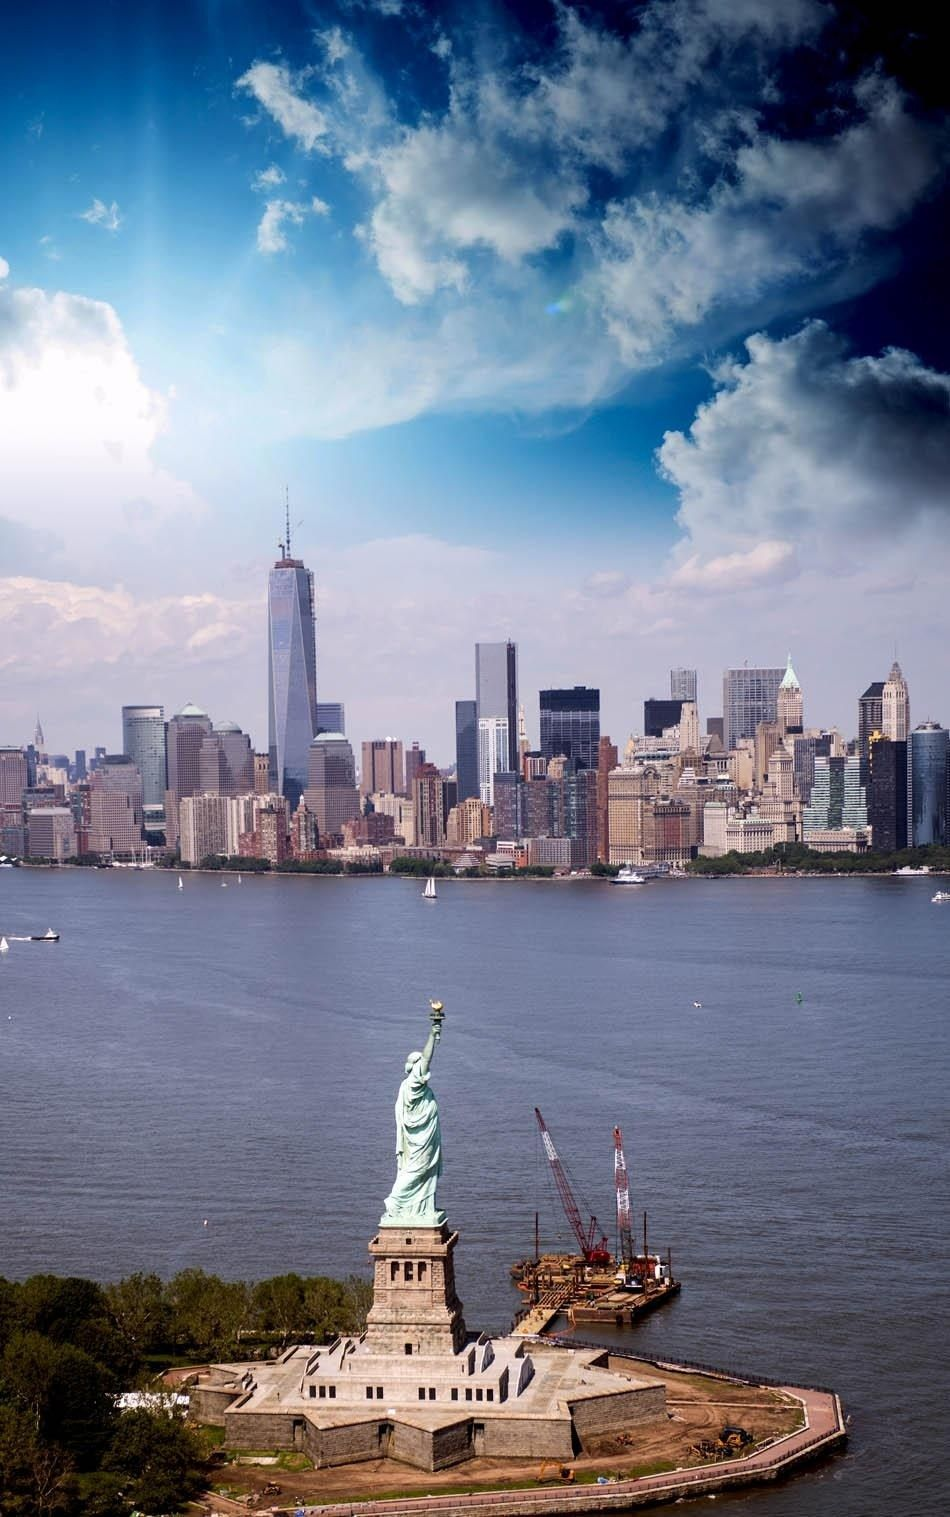 Spectacular helicopter view of Statue of Liberty and Manhattan skyline | Top 10 Reasons to Visit New York